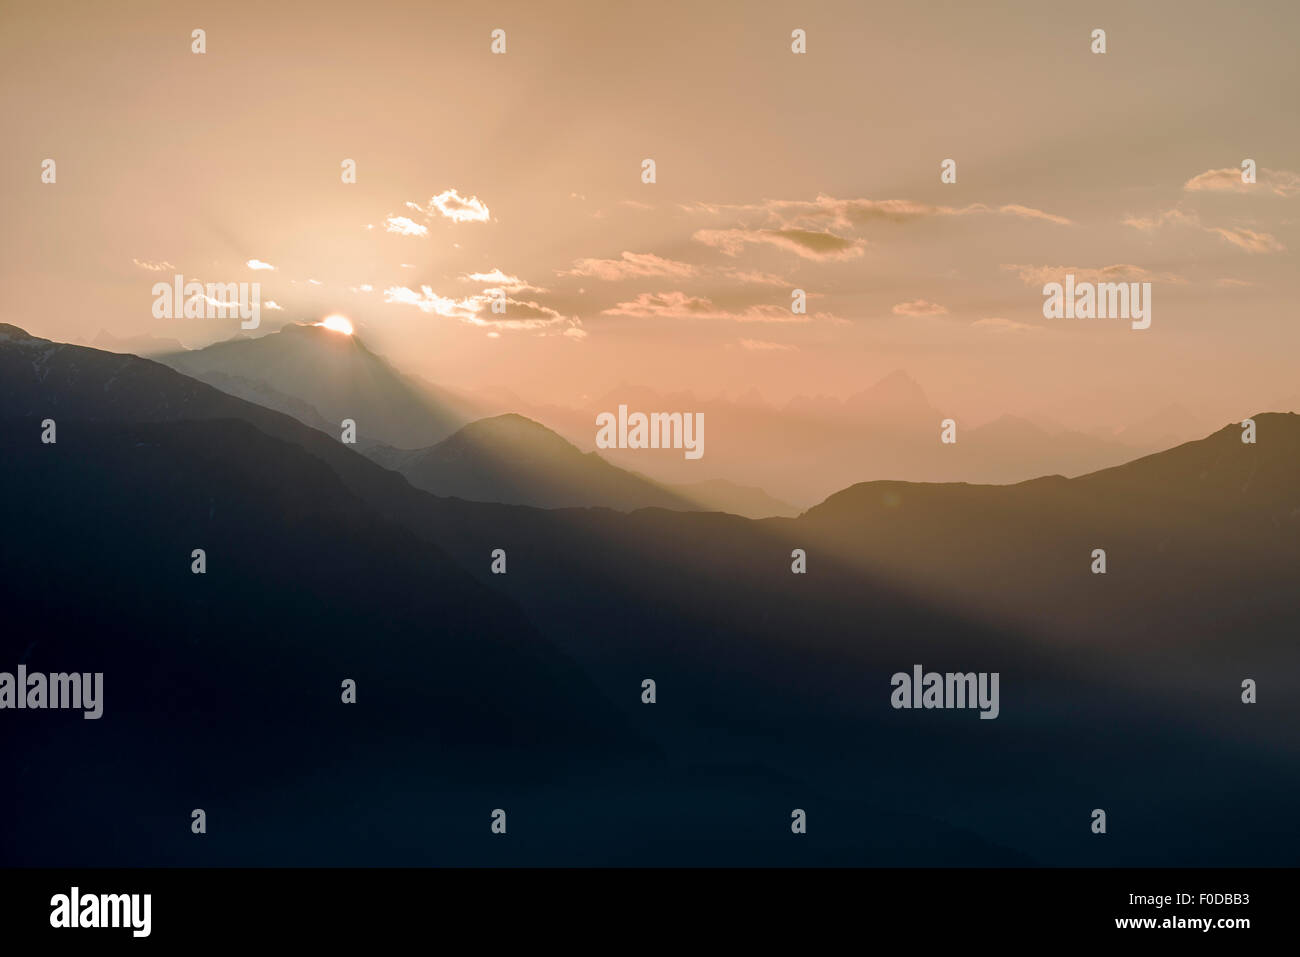 Sunrise above the mountains of the Great Himalayan Range, Tungnath, Uttarakhand, India - Stock Image